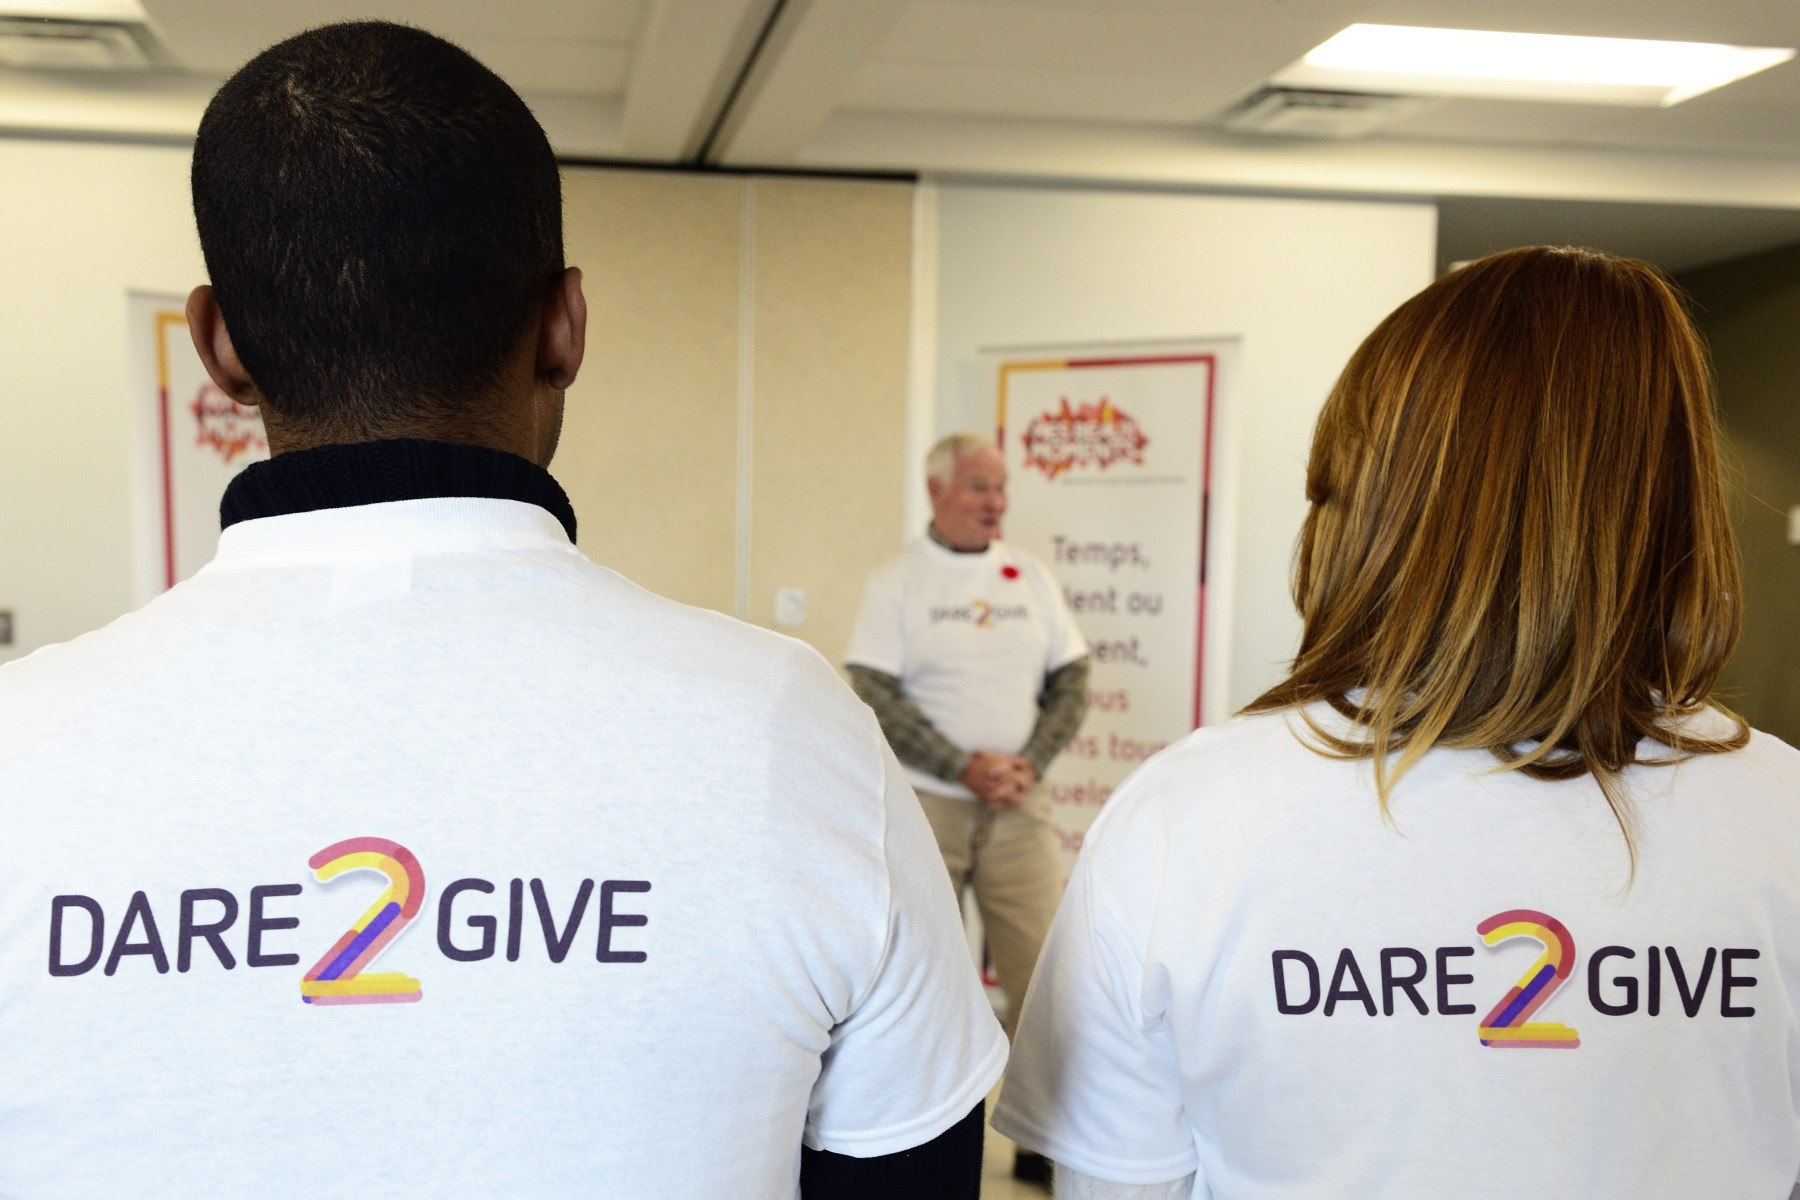 The Governor General was at the Ottawa Humane Society (OHS) for the official launch of the Dare2Give challenge, the latest in the My Giving Moment Campaign.